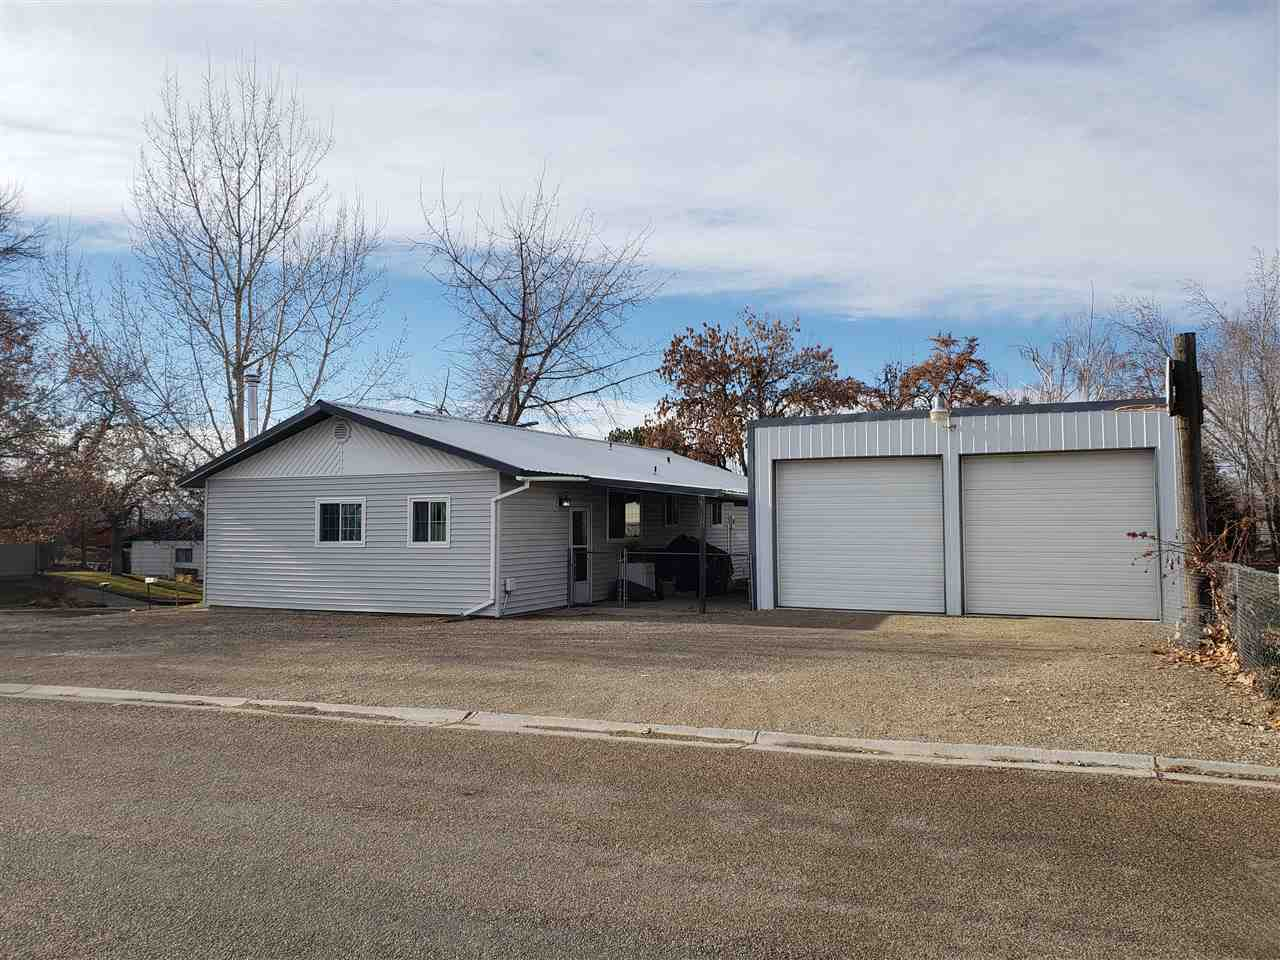 921 N 9th Street, Parma, Idaho 83660-5966, 4 Bedrooms, 1 Bathroom, Residential For Sale, Price $189,999, 98715188